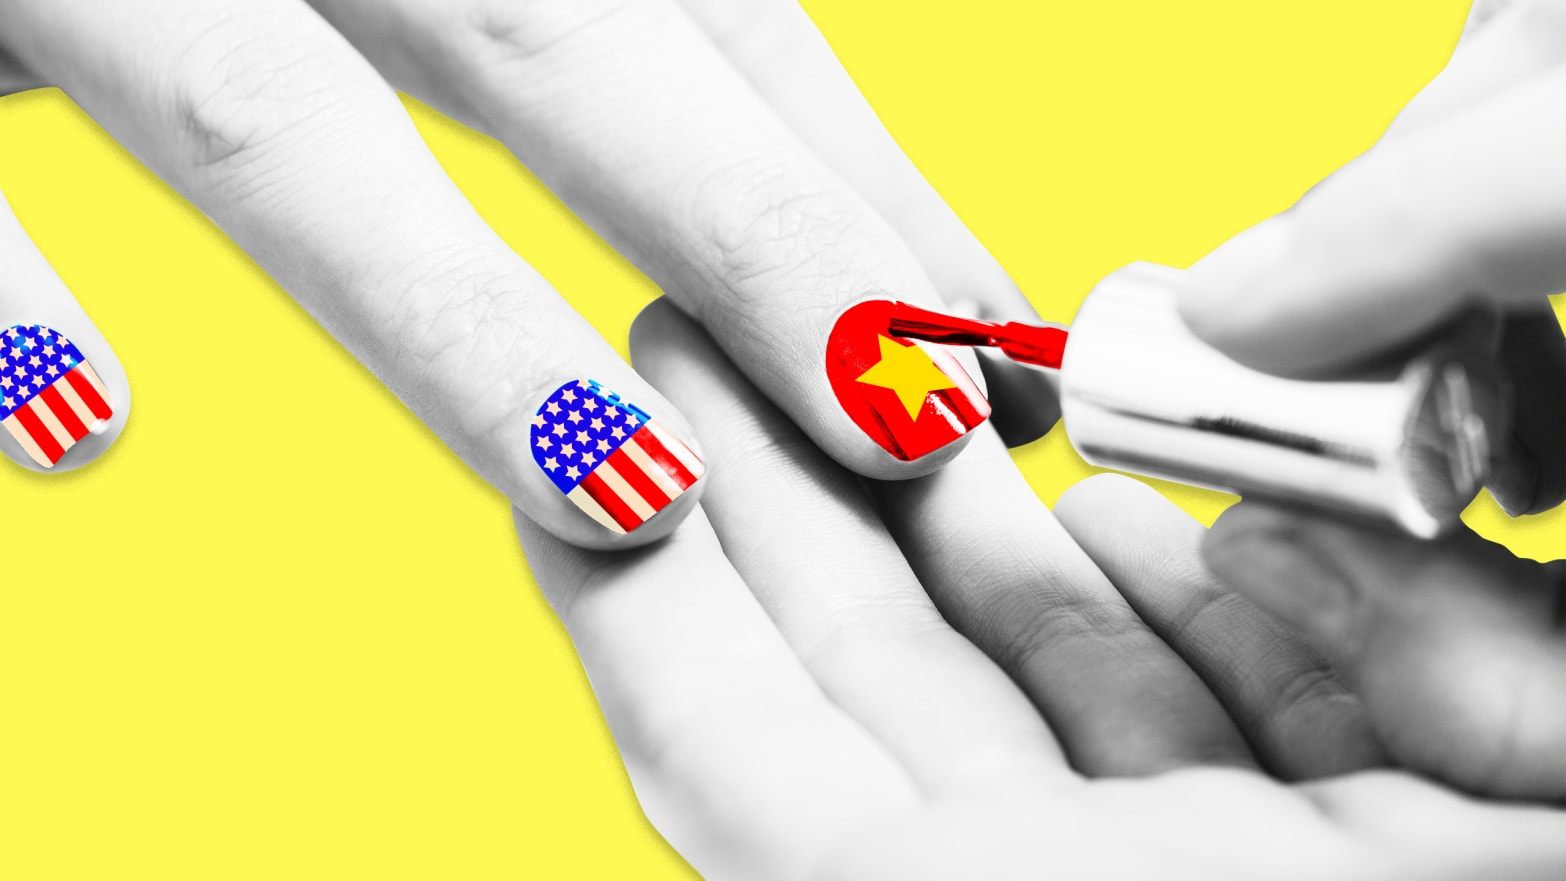 The Nail Diaspora: How Manicures Transformed the Vietnamese ...